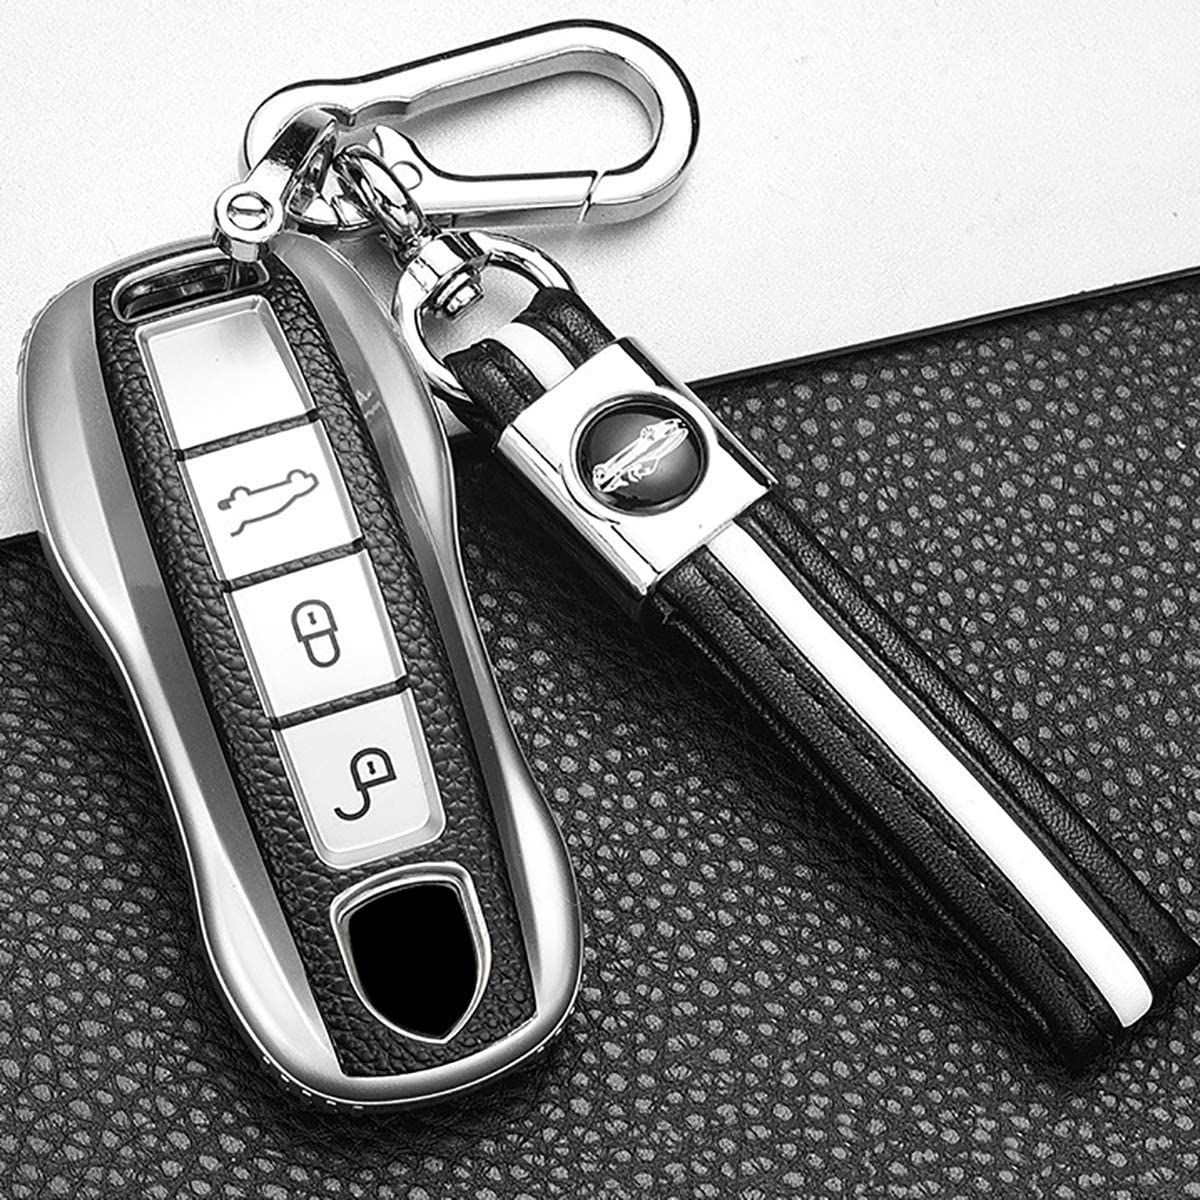 ontto Stylish Key Fob Cover for Porsche 2020 2021 Key Case Soft TPU Key Shell with Keychain for Panamera Cayenne Macan 2019 2020 Remote Keyless Green